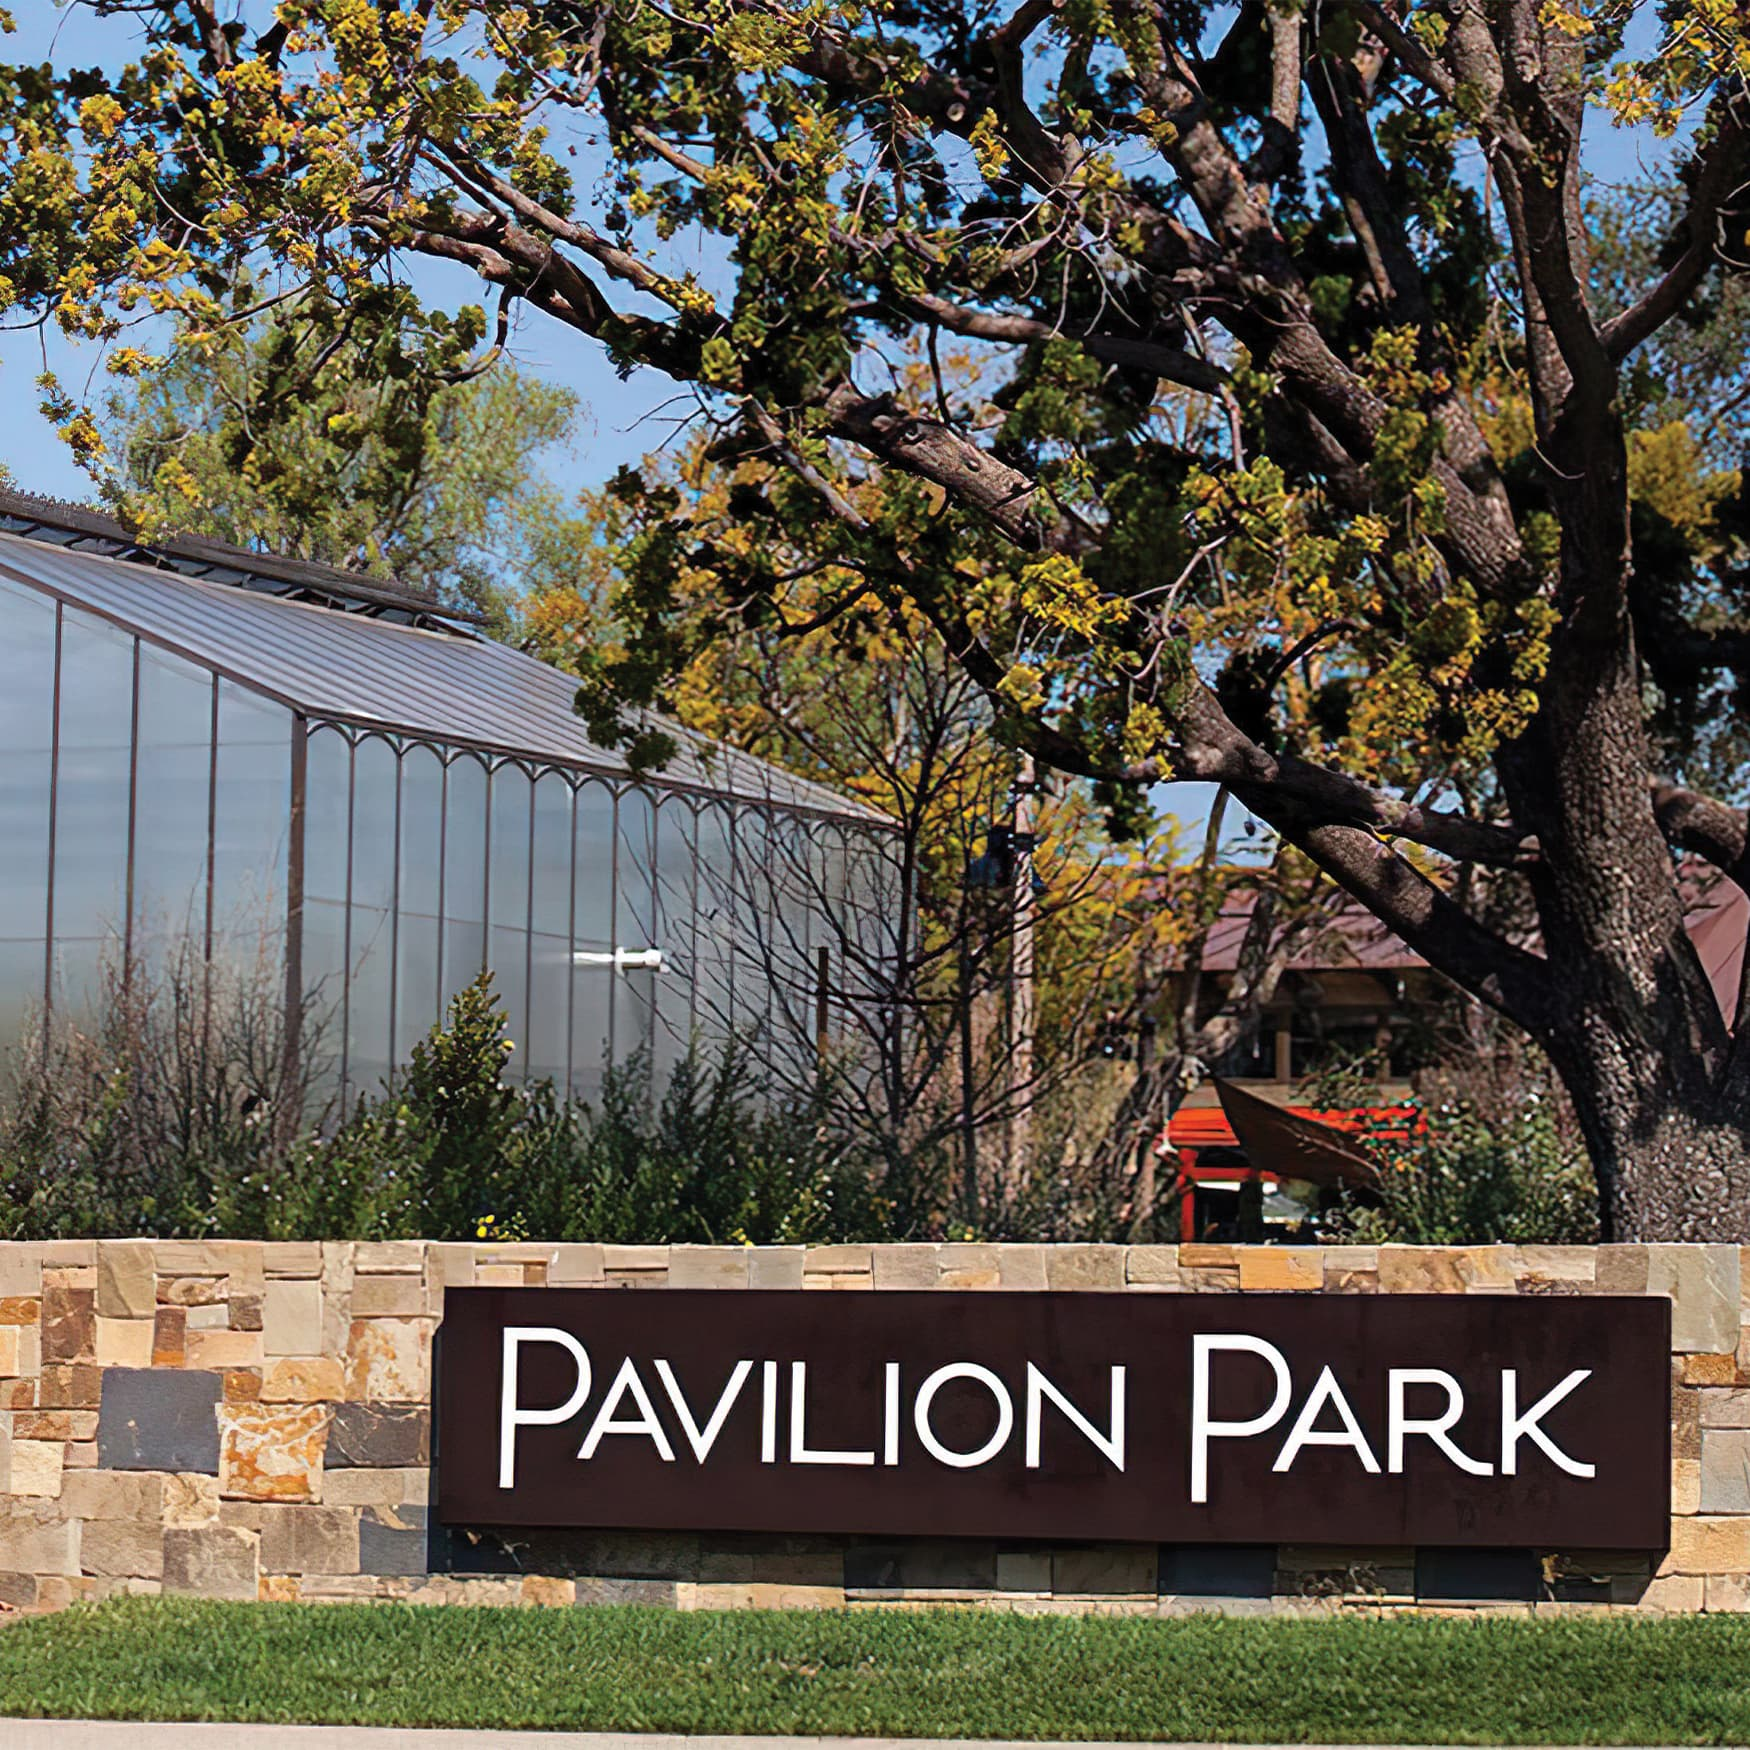 Monument identity stone wall with corten cabinet and Pavilion Park signage.